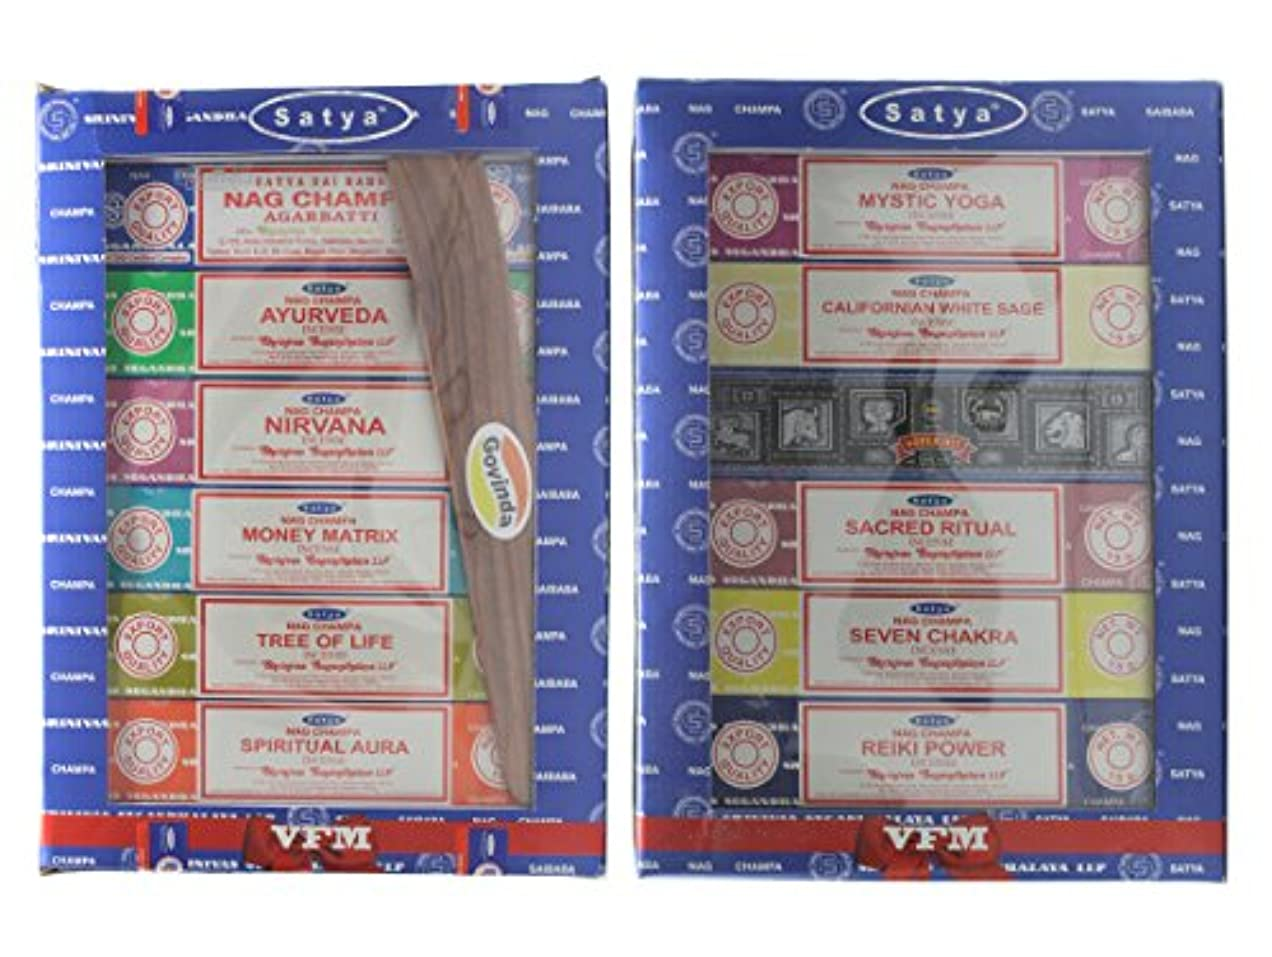 セットof 12 Nag Champa Ayurveda Nirvana MoneyマトリックスTree of Life Spiritual Aura MysticヨガカリフォルニアホワイトセージSuper Hit Sacred...